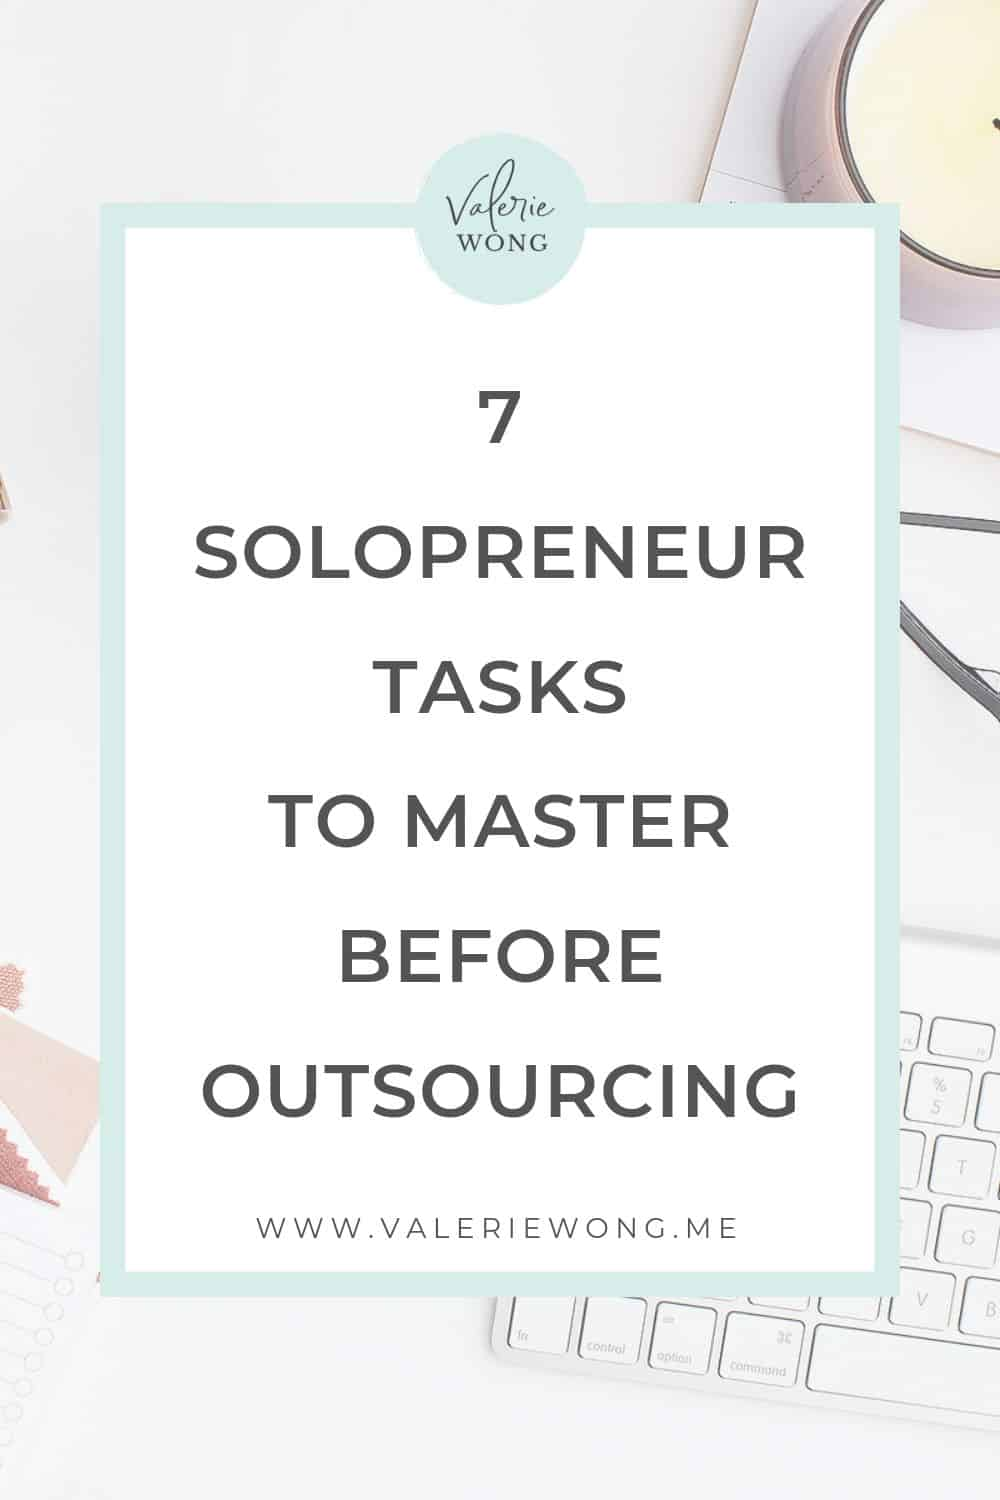 7 essential solopreneur tasks you need to master before outsourcing | Outsourcing is an amazing time saver for solopreneurs, but outsourcing certain tasks too soon can be a mistake. There are some tasks you should be proficient in before handing them off to a virtual assistant. In this post I'll share 7 things you need to learn to do yourself as a digital entrepreneur before you outsource, and why it's important. | Valerie Wong Wellness #valeriewong #outsourcing #outsourcingtips #solopreneurtips